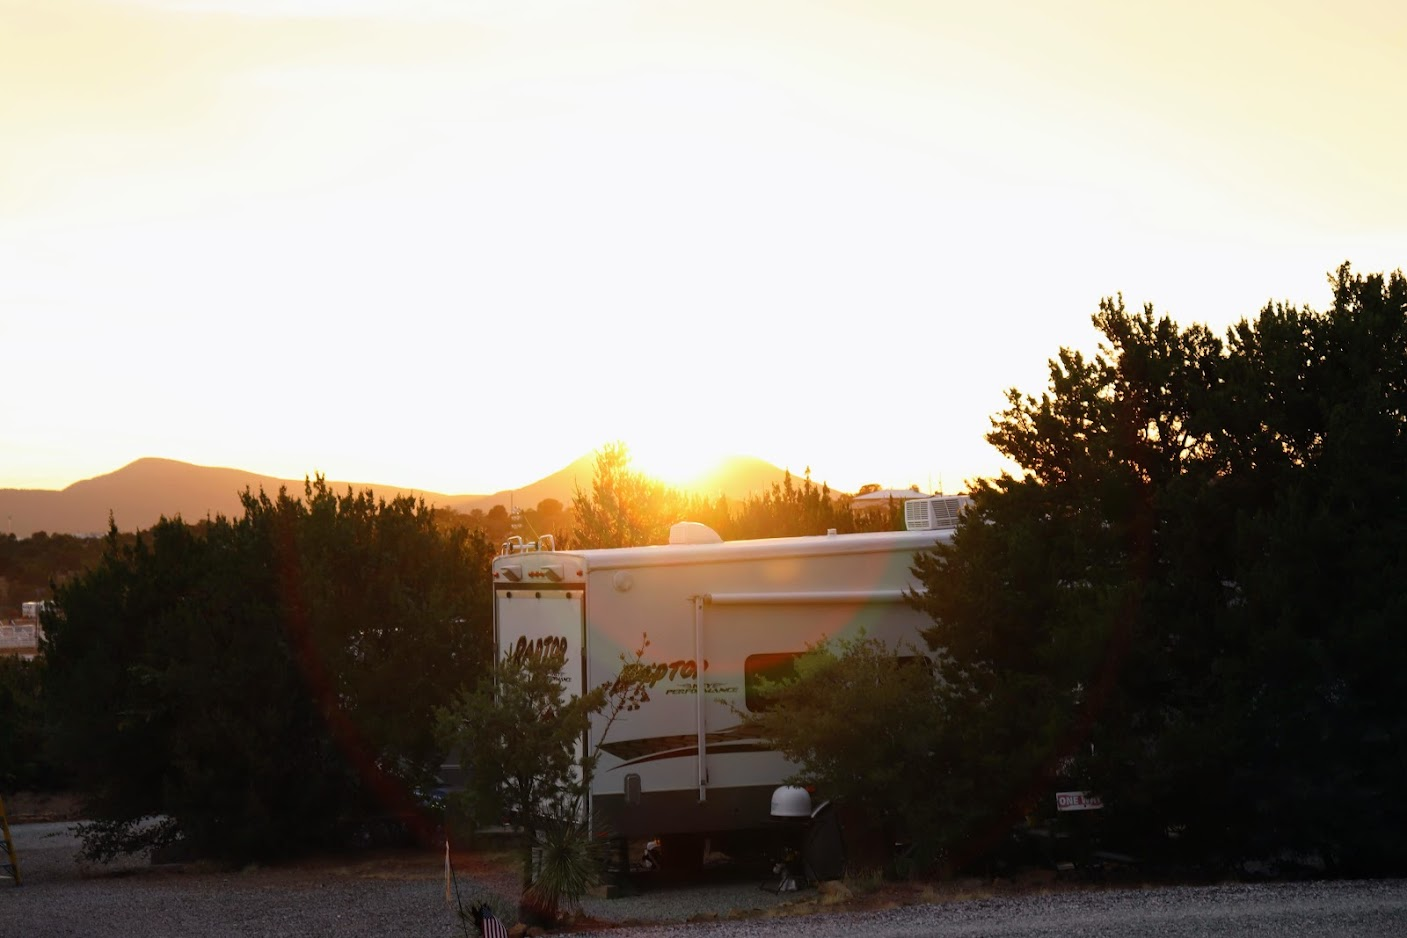 Manzano's RV Park at sunset in 2020